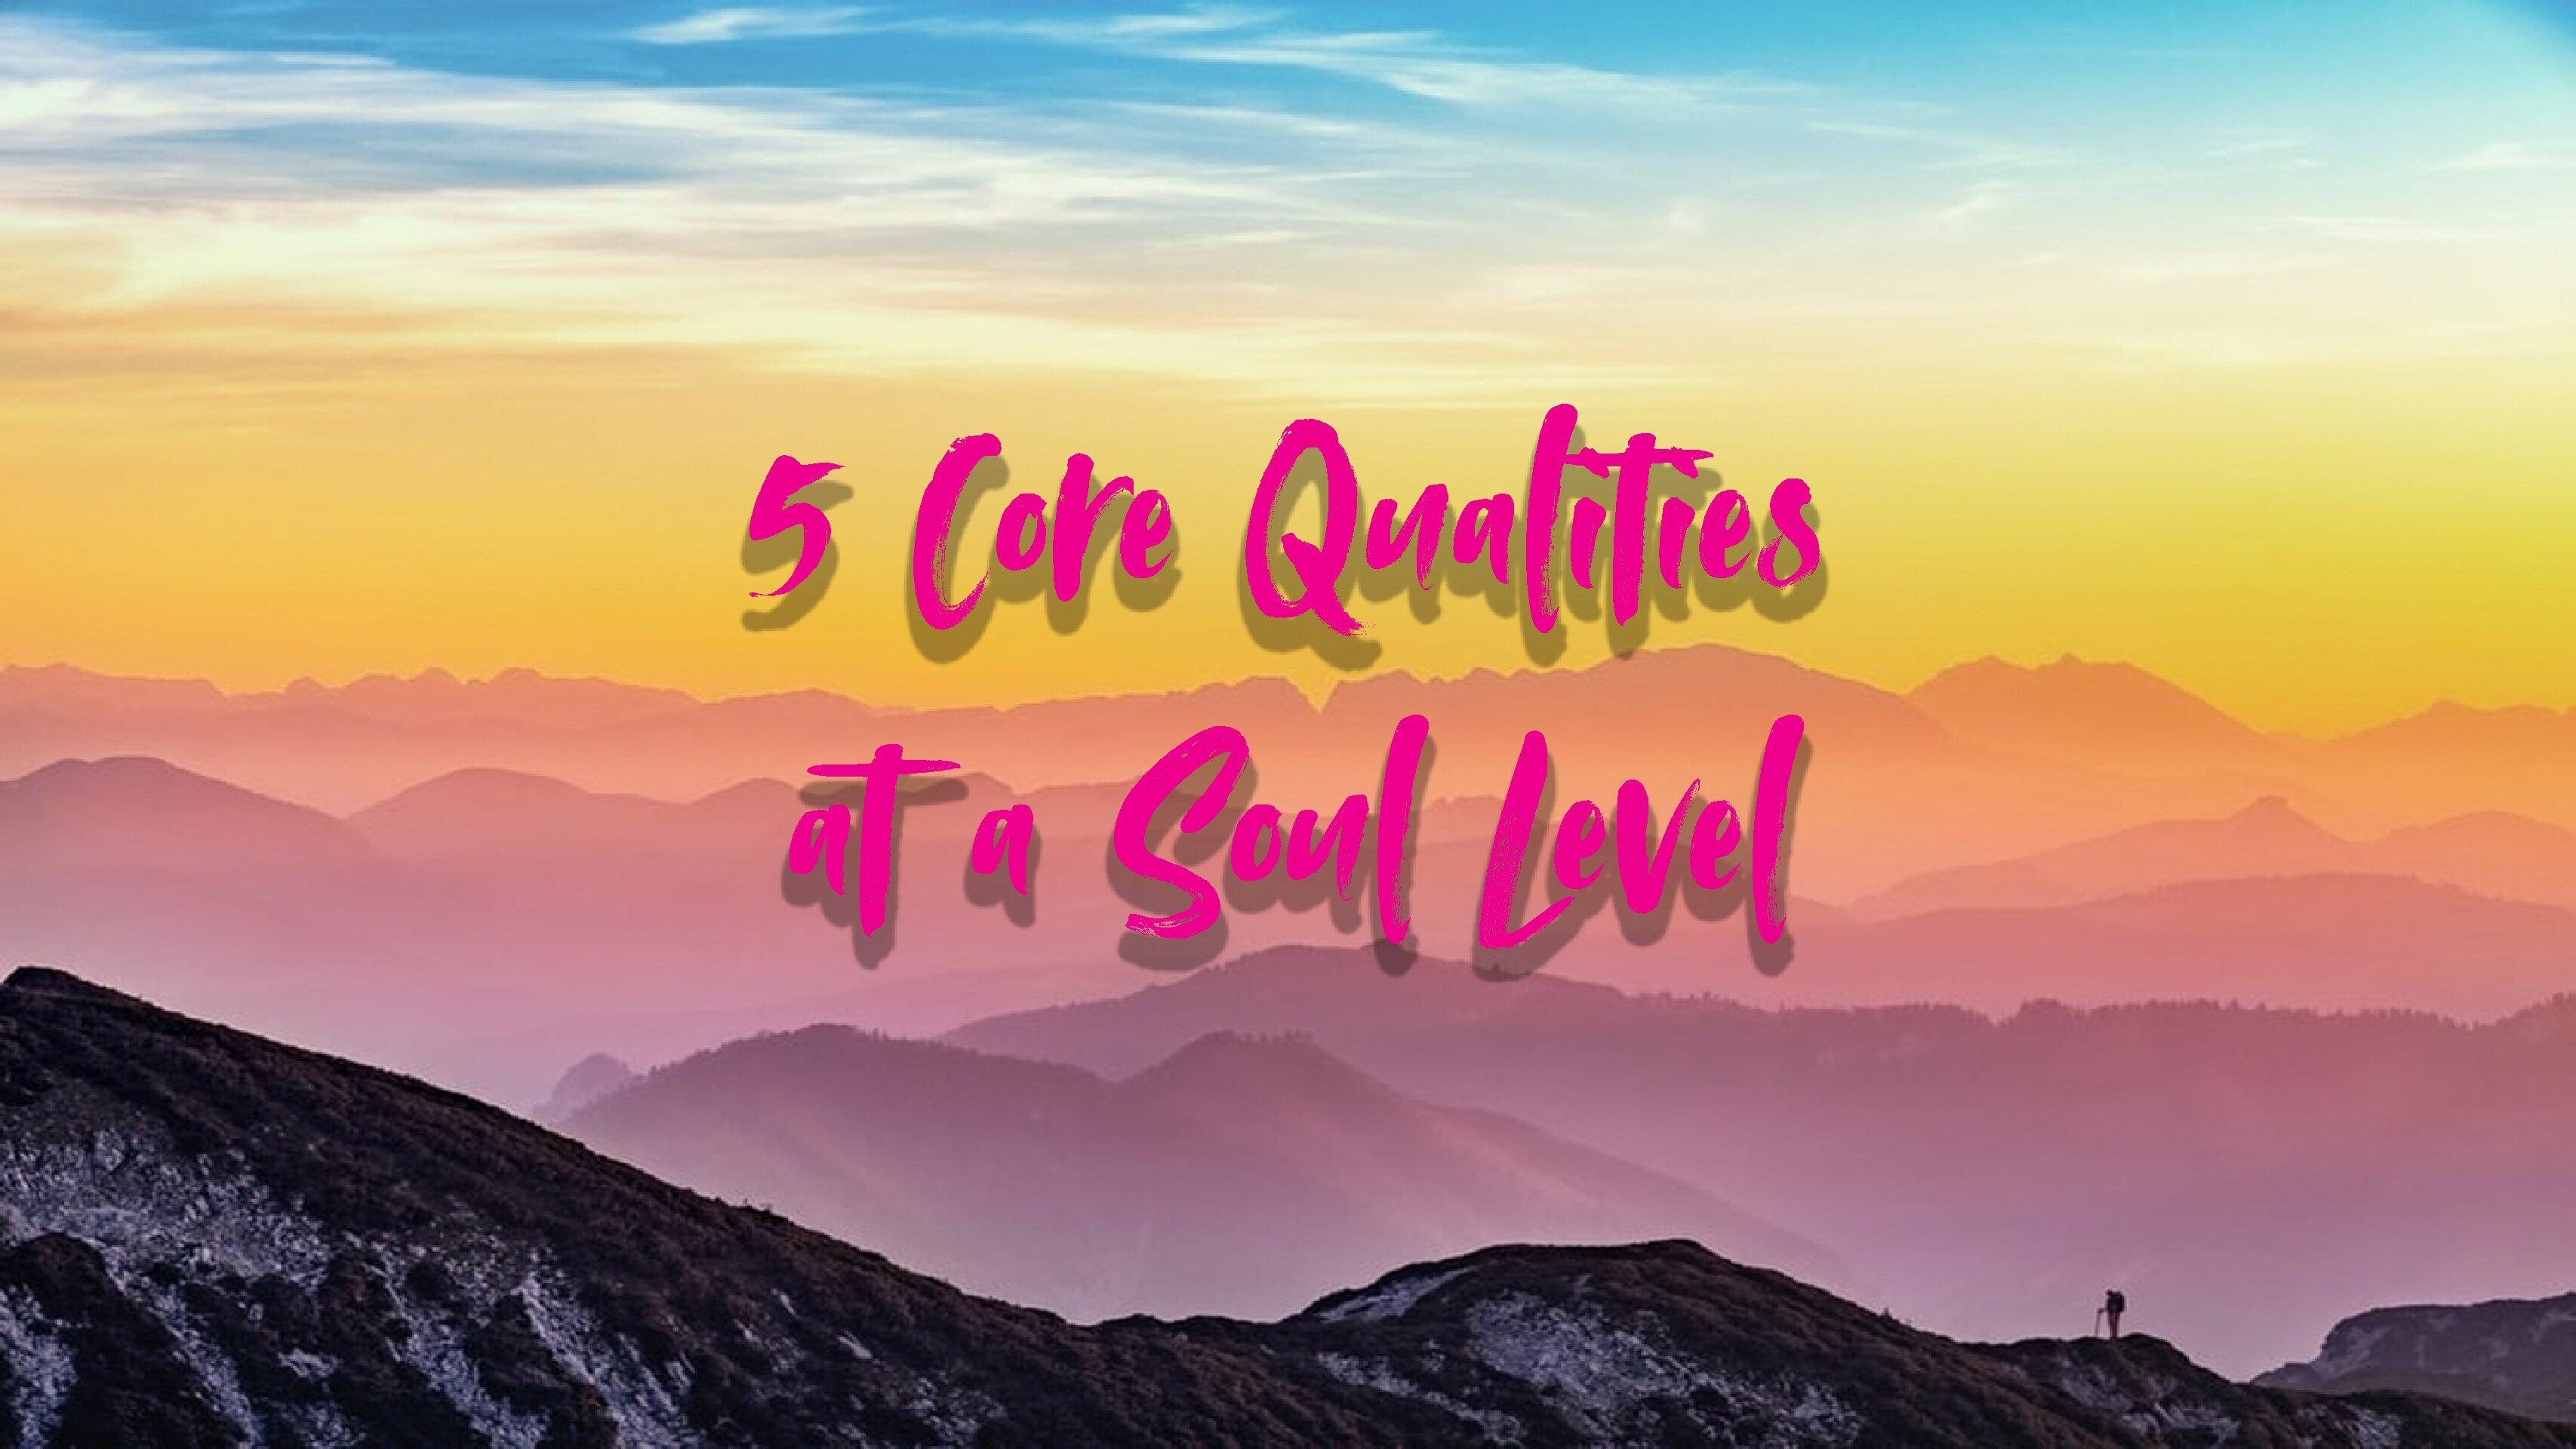 5 Core Qualities at a Soul Level